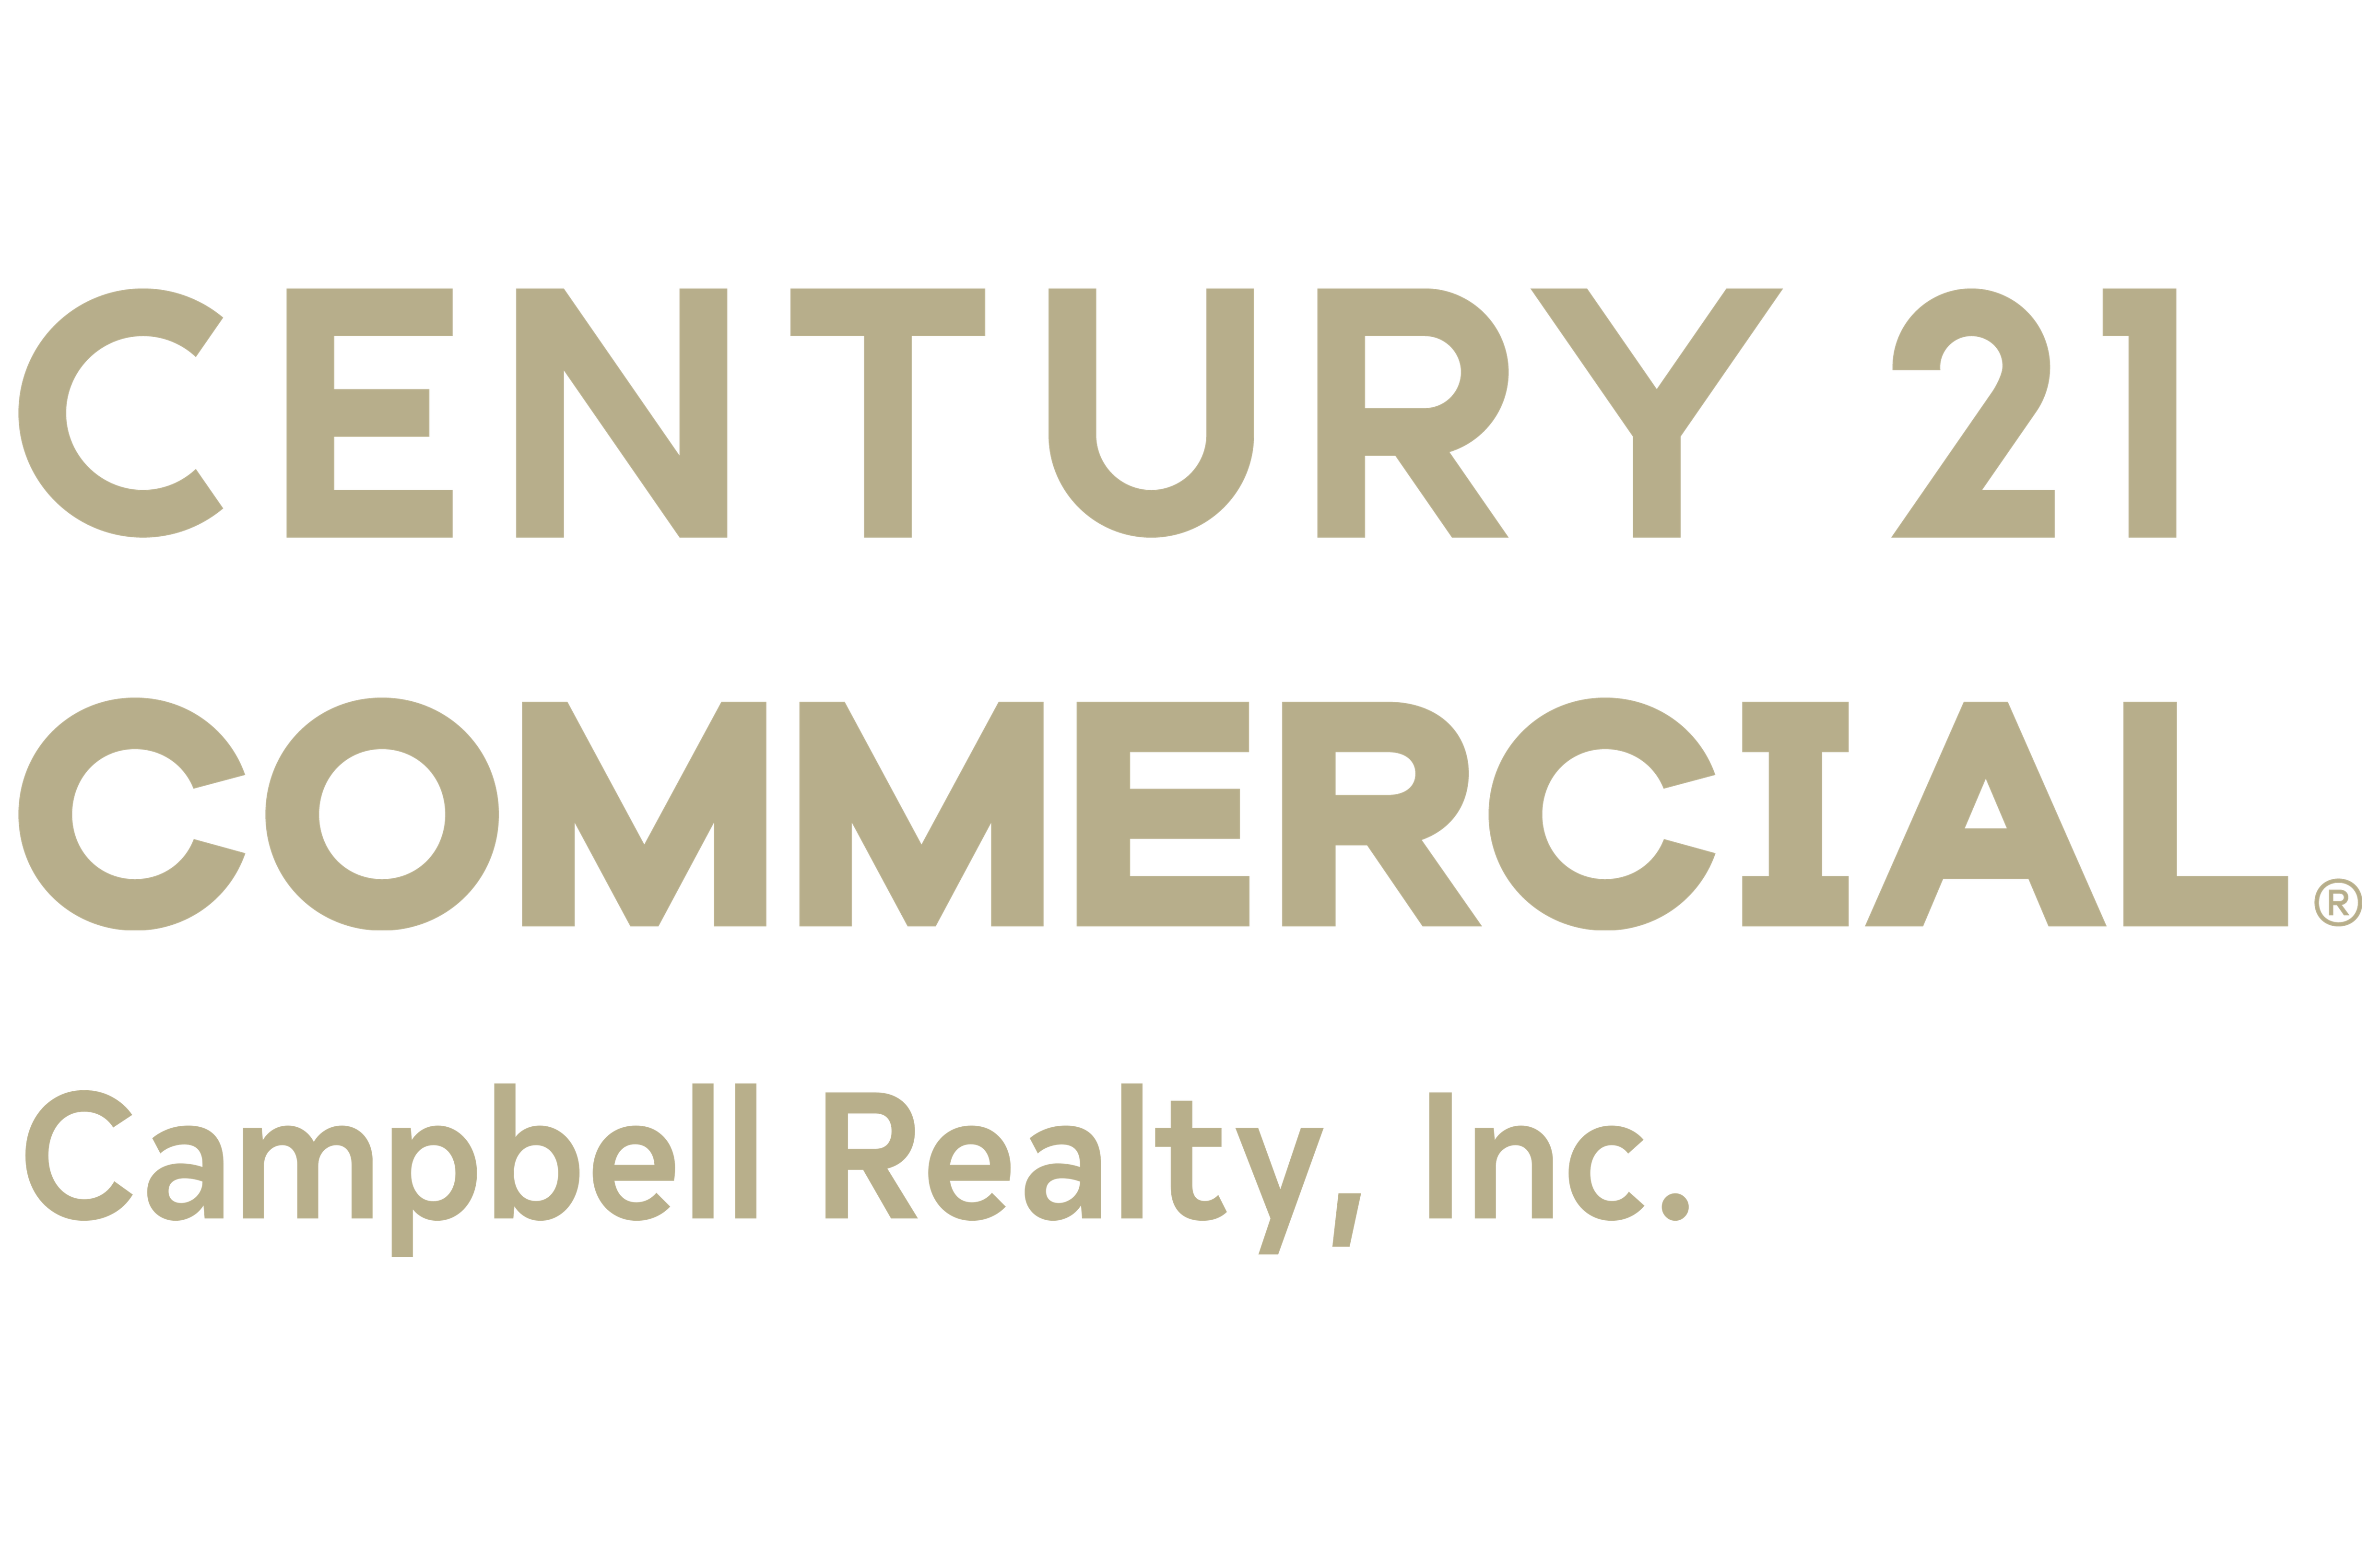 CENTURY 21 Campbell Realty, Inc.